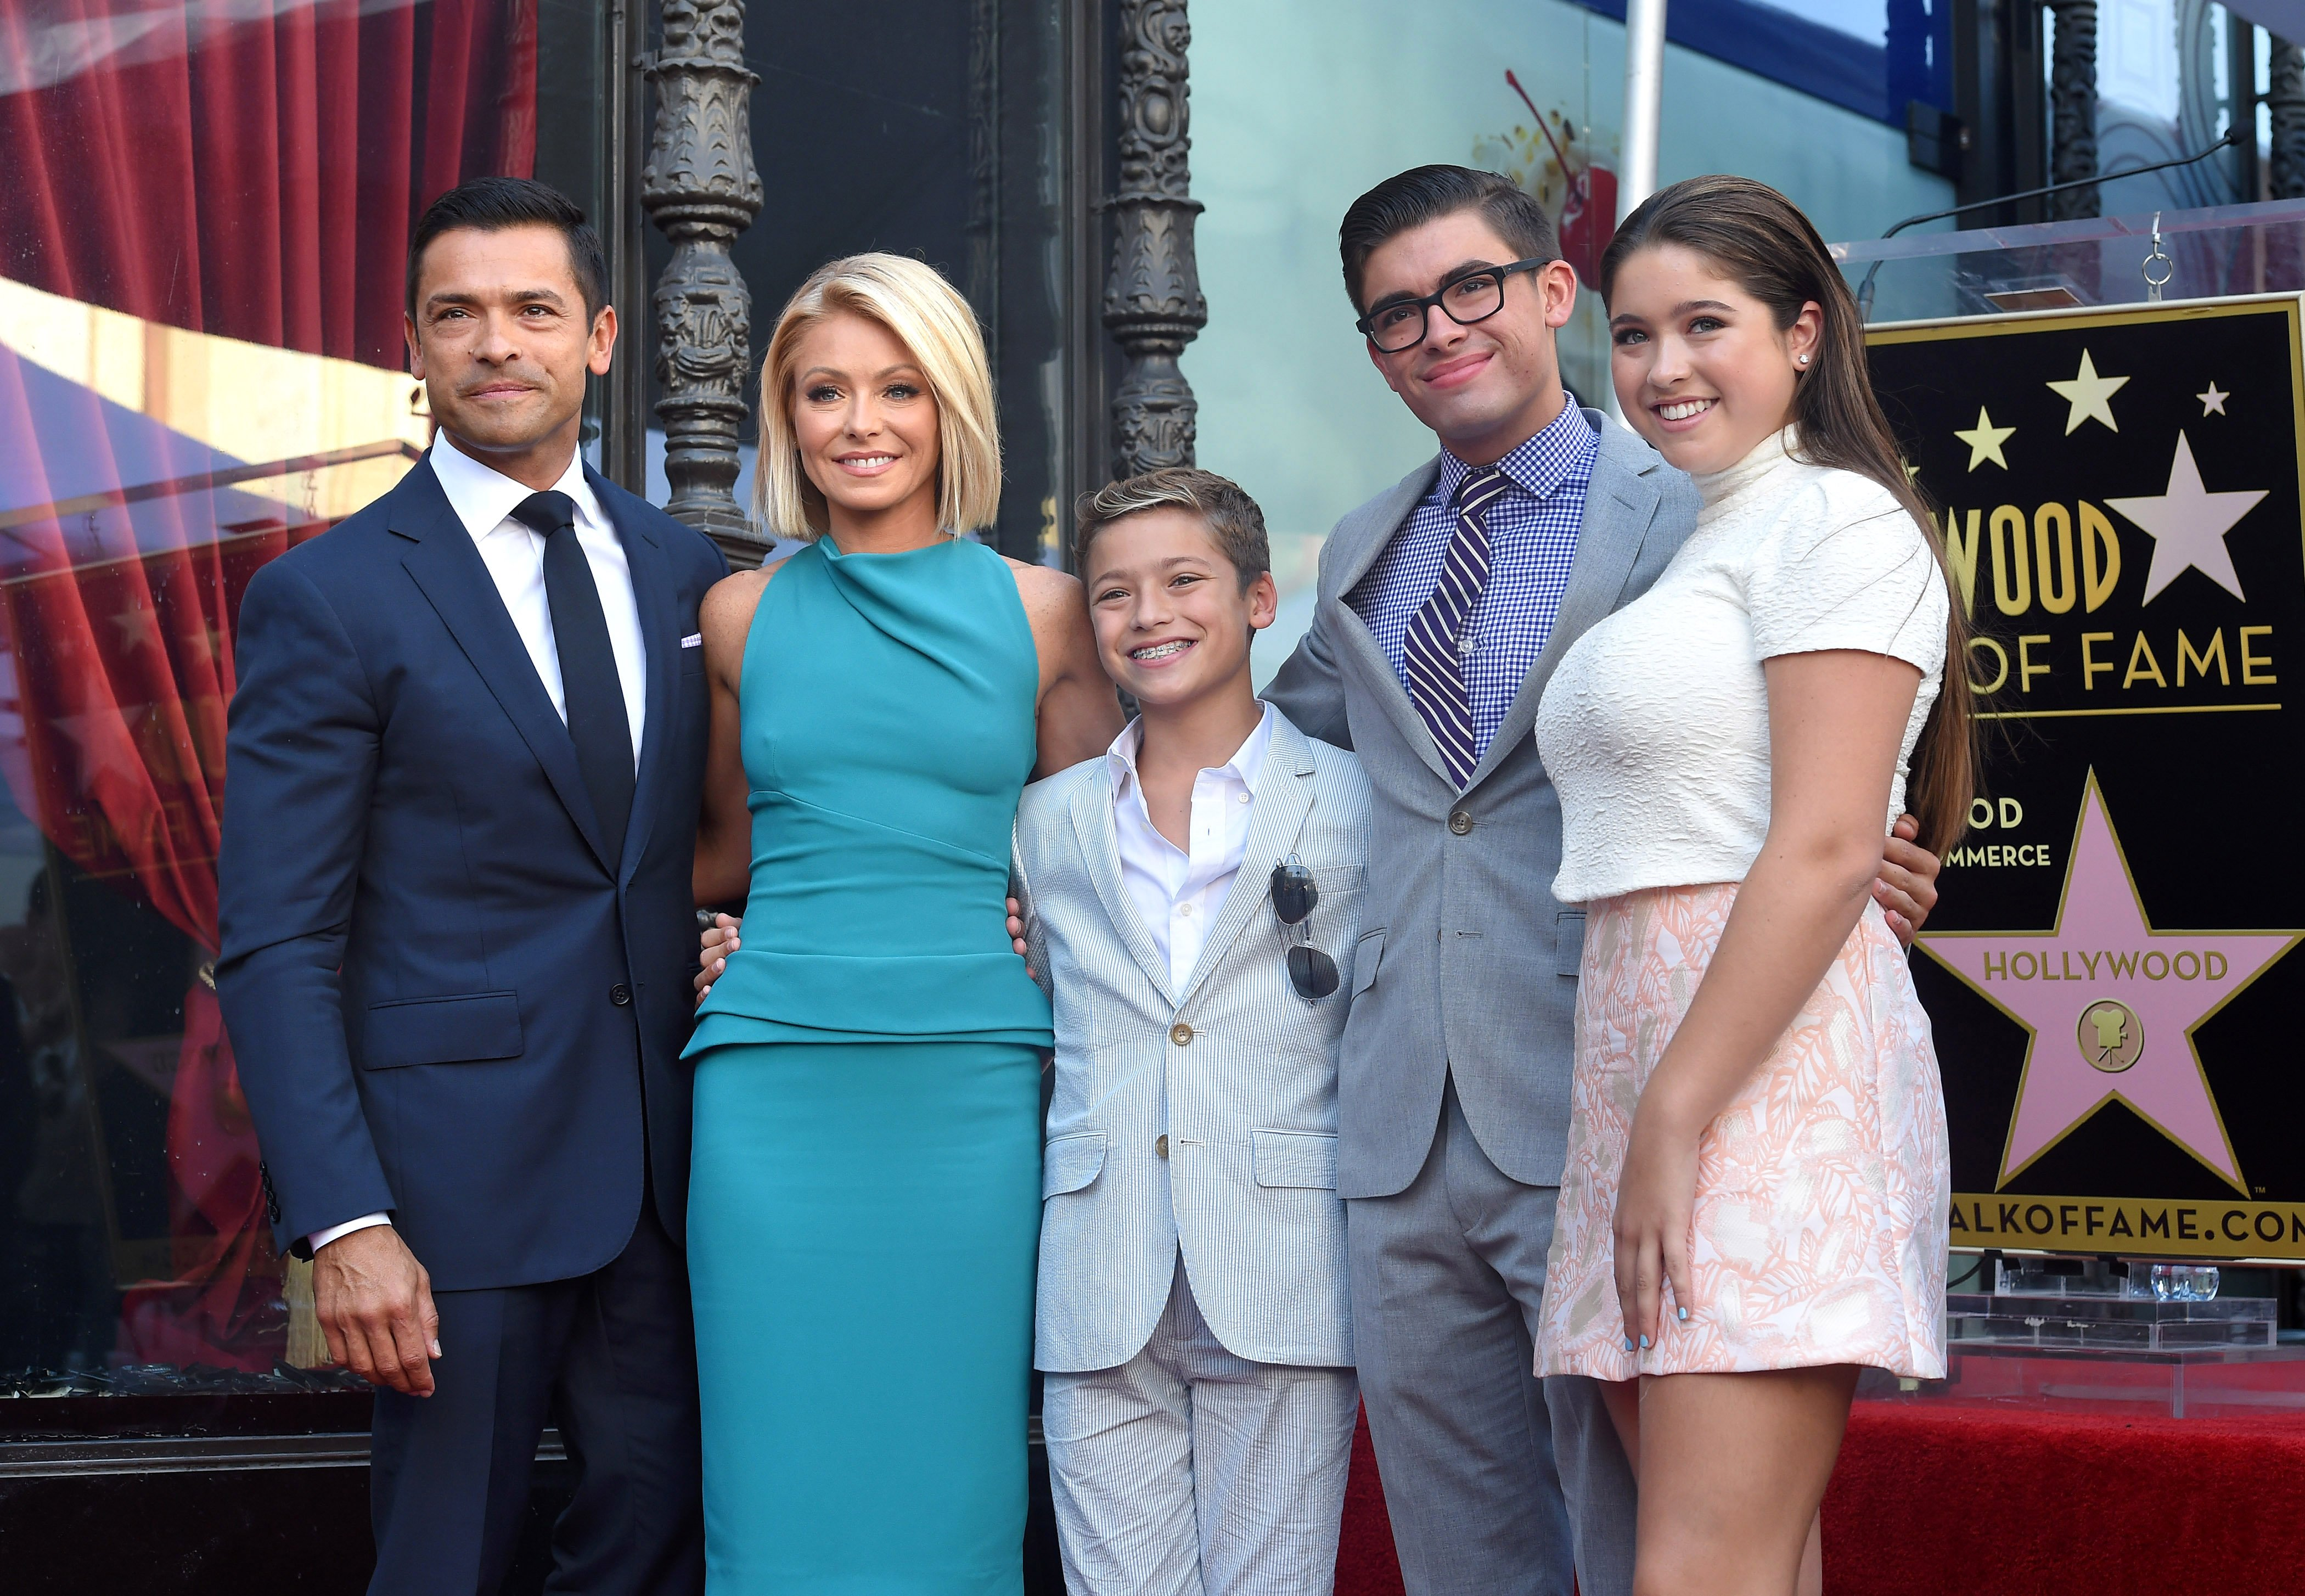 Image Credits: Getty Images / Axelle / Bauer-Griffin / FilmMagic | Kelly Ripa, husband Mark Consuelos, daughter Lola Consuelos, sons Michael Consuelos and Joaquin Consuelos attend the ceremony honoring Kelly Ripa with a star on the Hollywood Walk of Fame on October 12, 2015 in Hollywood, California.